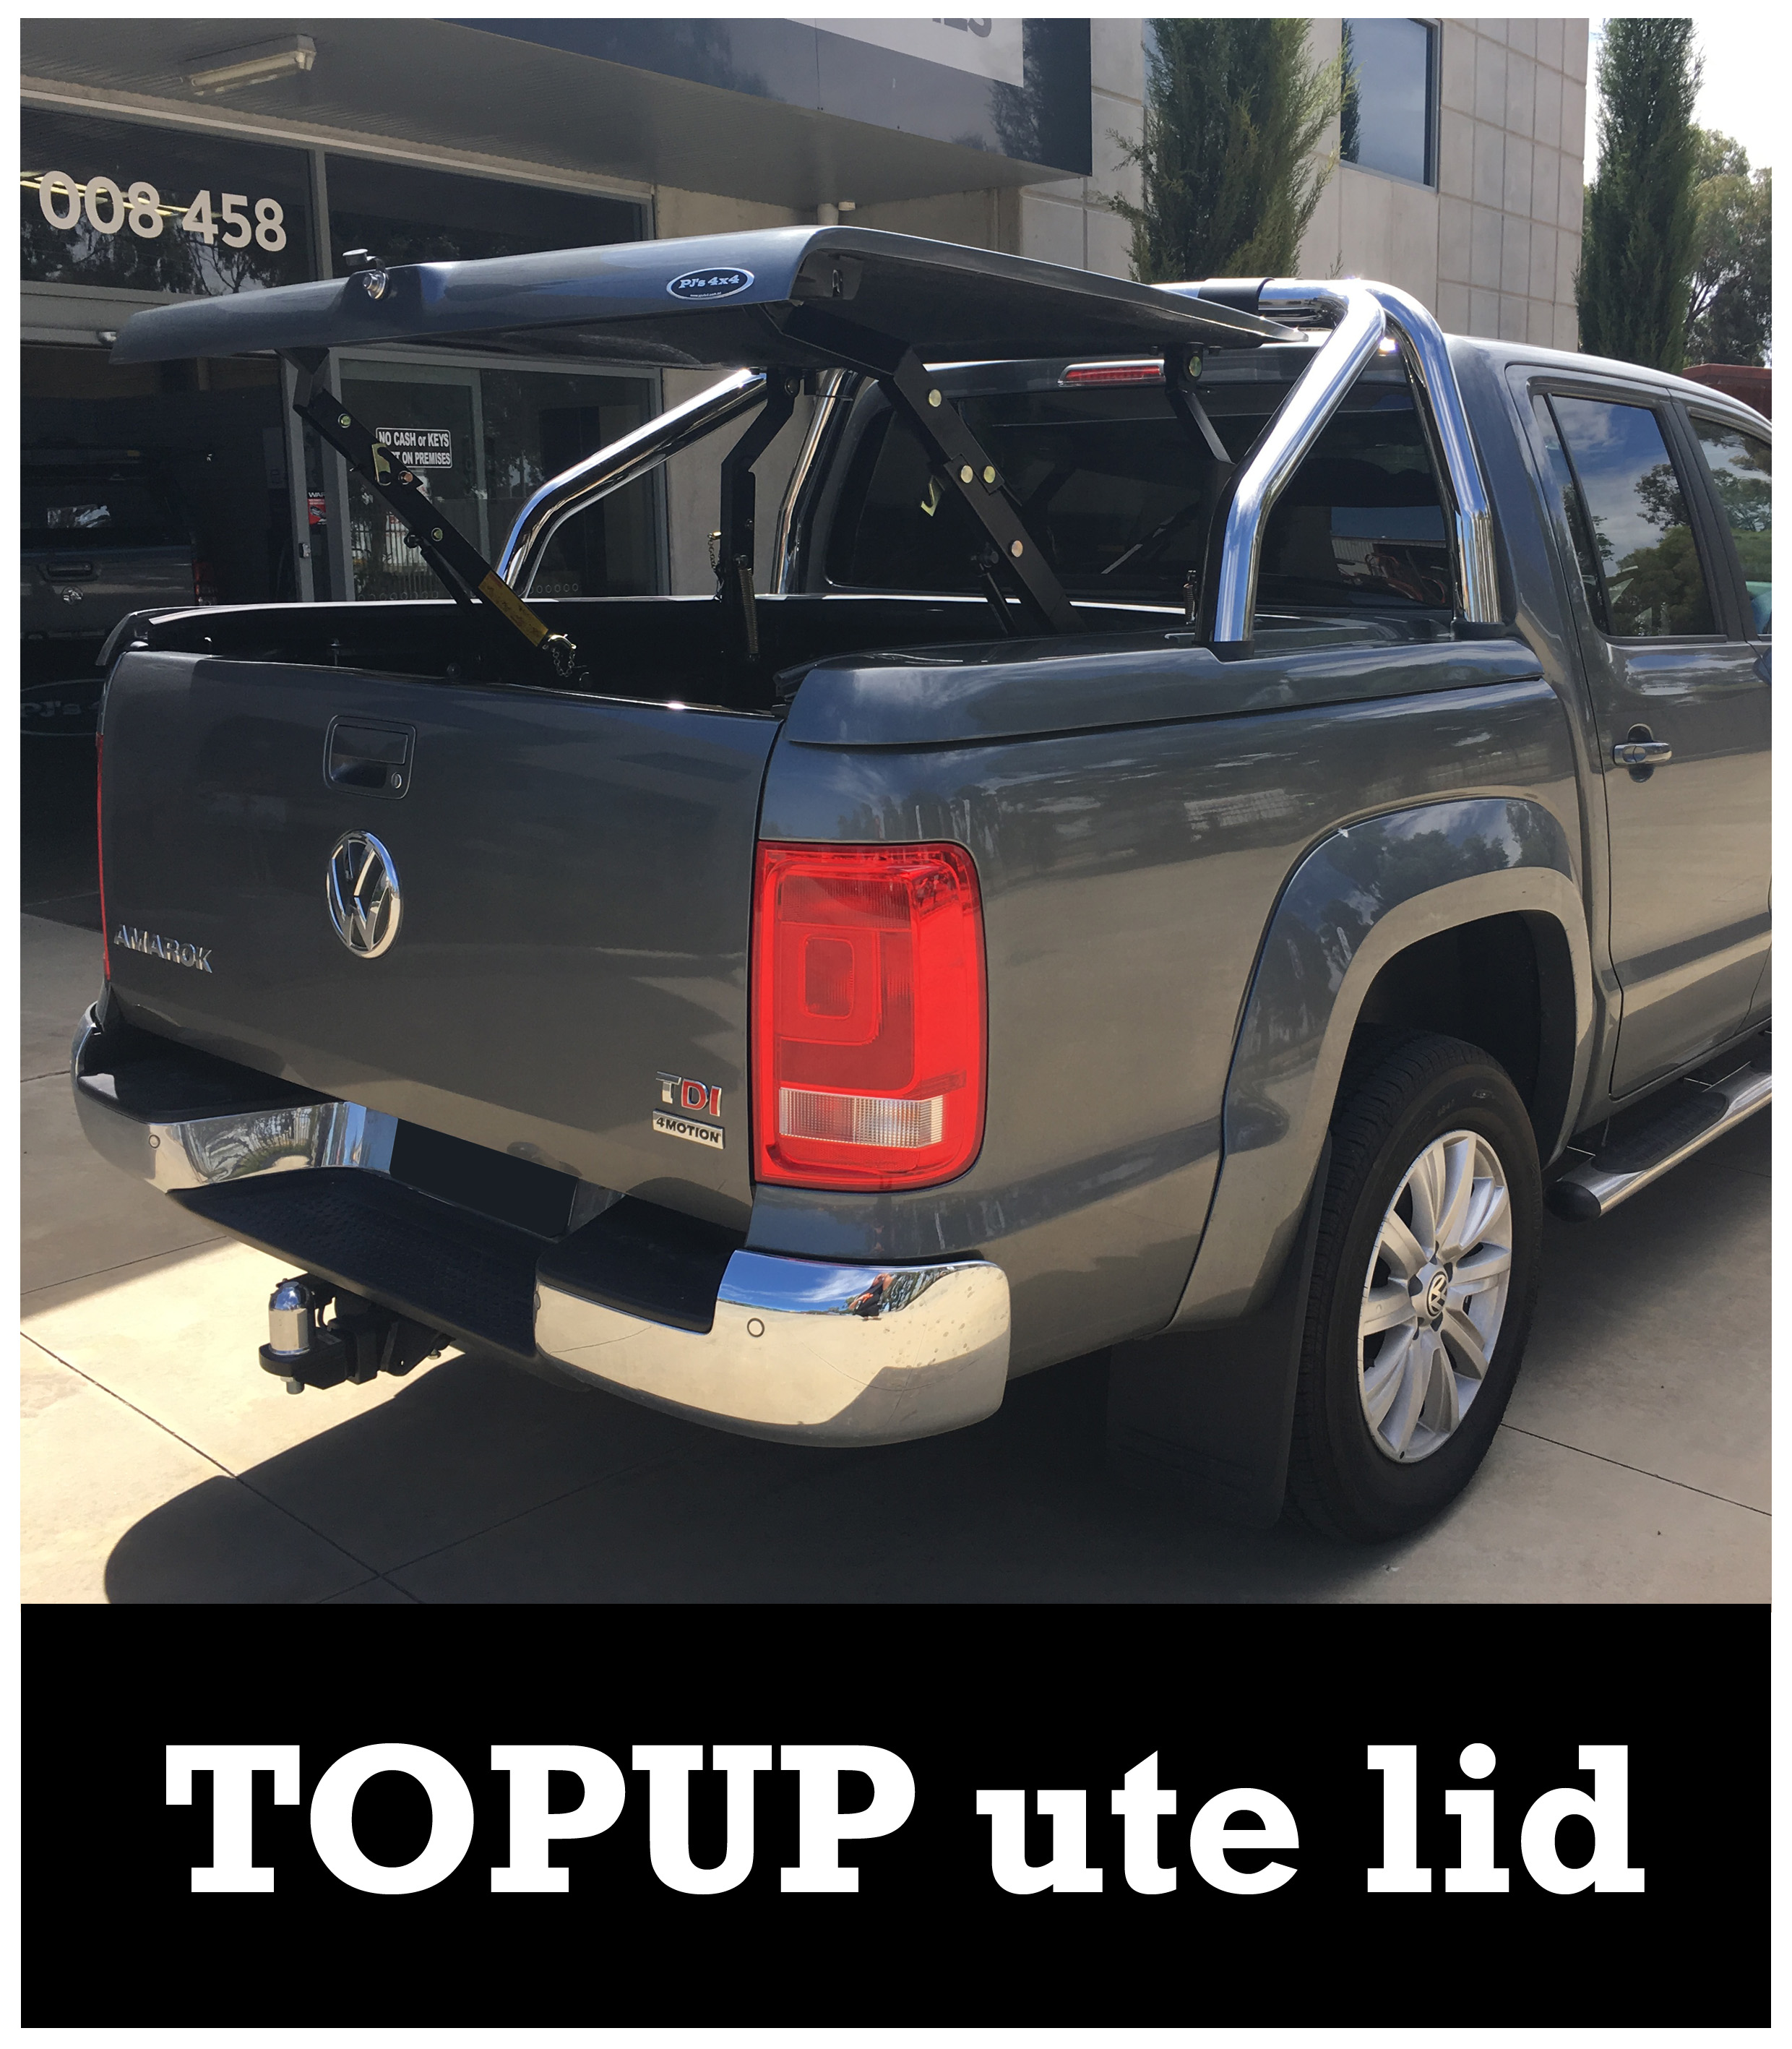 WEbsite_Amarok_TopUp_Thumbnail_edited-1.jpg